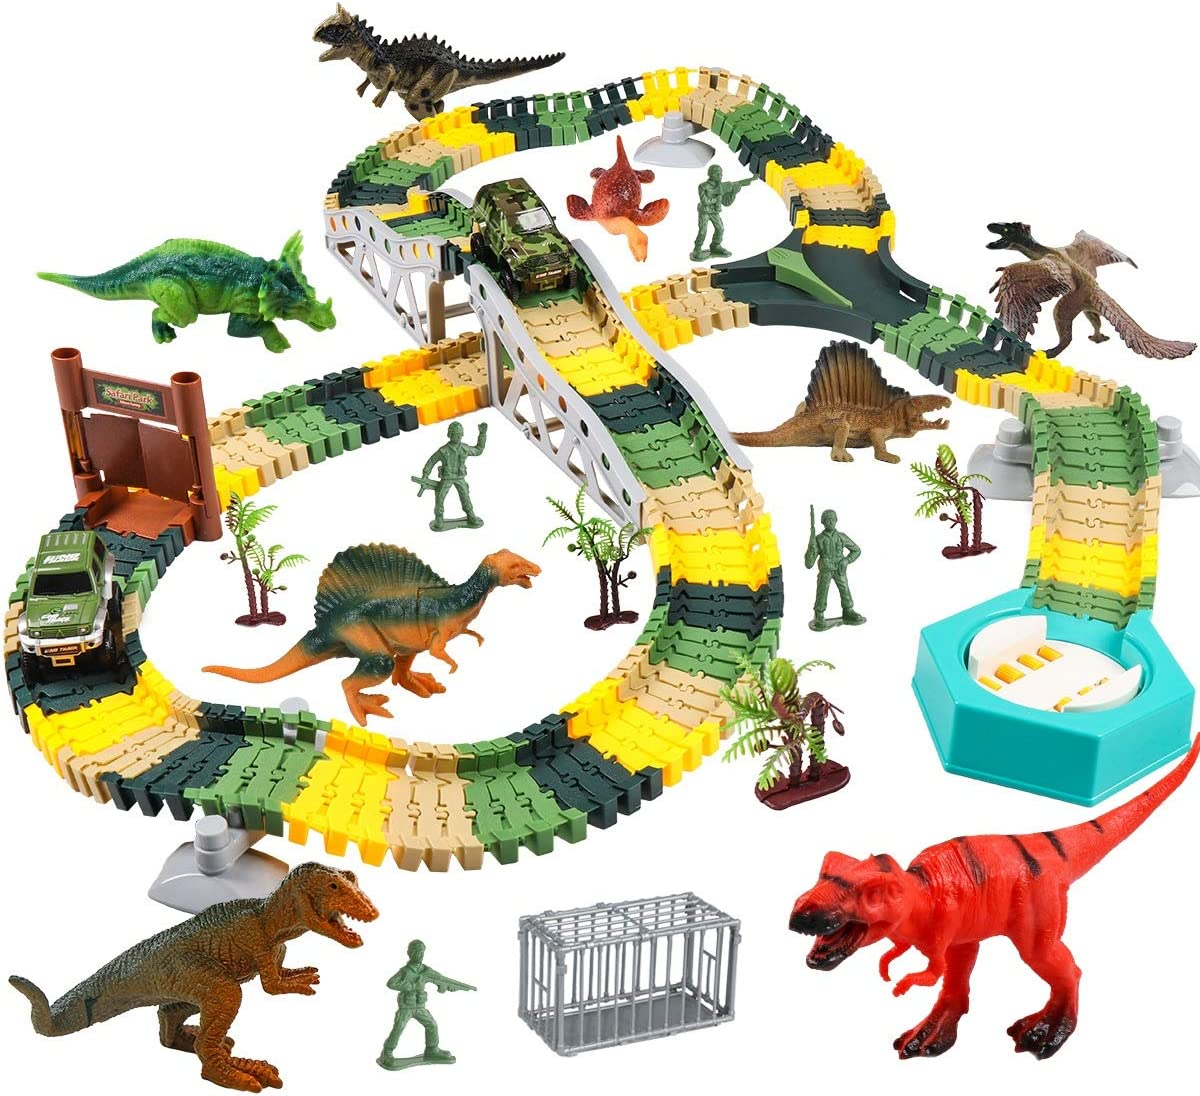 Meland Dinosaur Race Track Car Toy Set - 215 Pcs Flexible Train Tracks Kids Gift Playset Toys for 3 4 5 6 Year Old Boys with 4 Dinosaurs, 2 Race Cars, 4 Soldiers